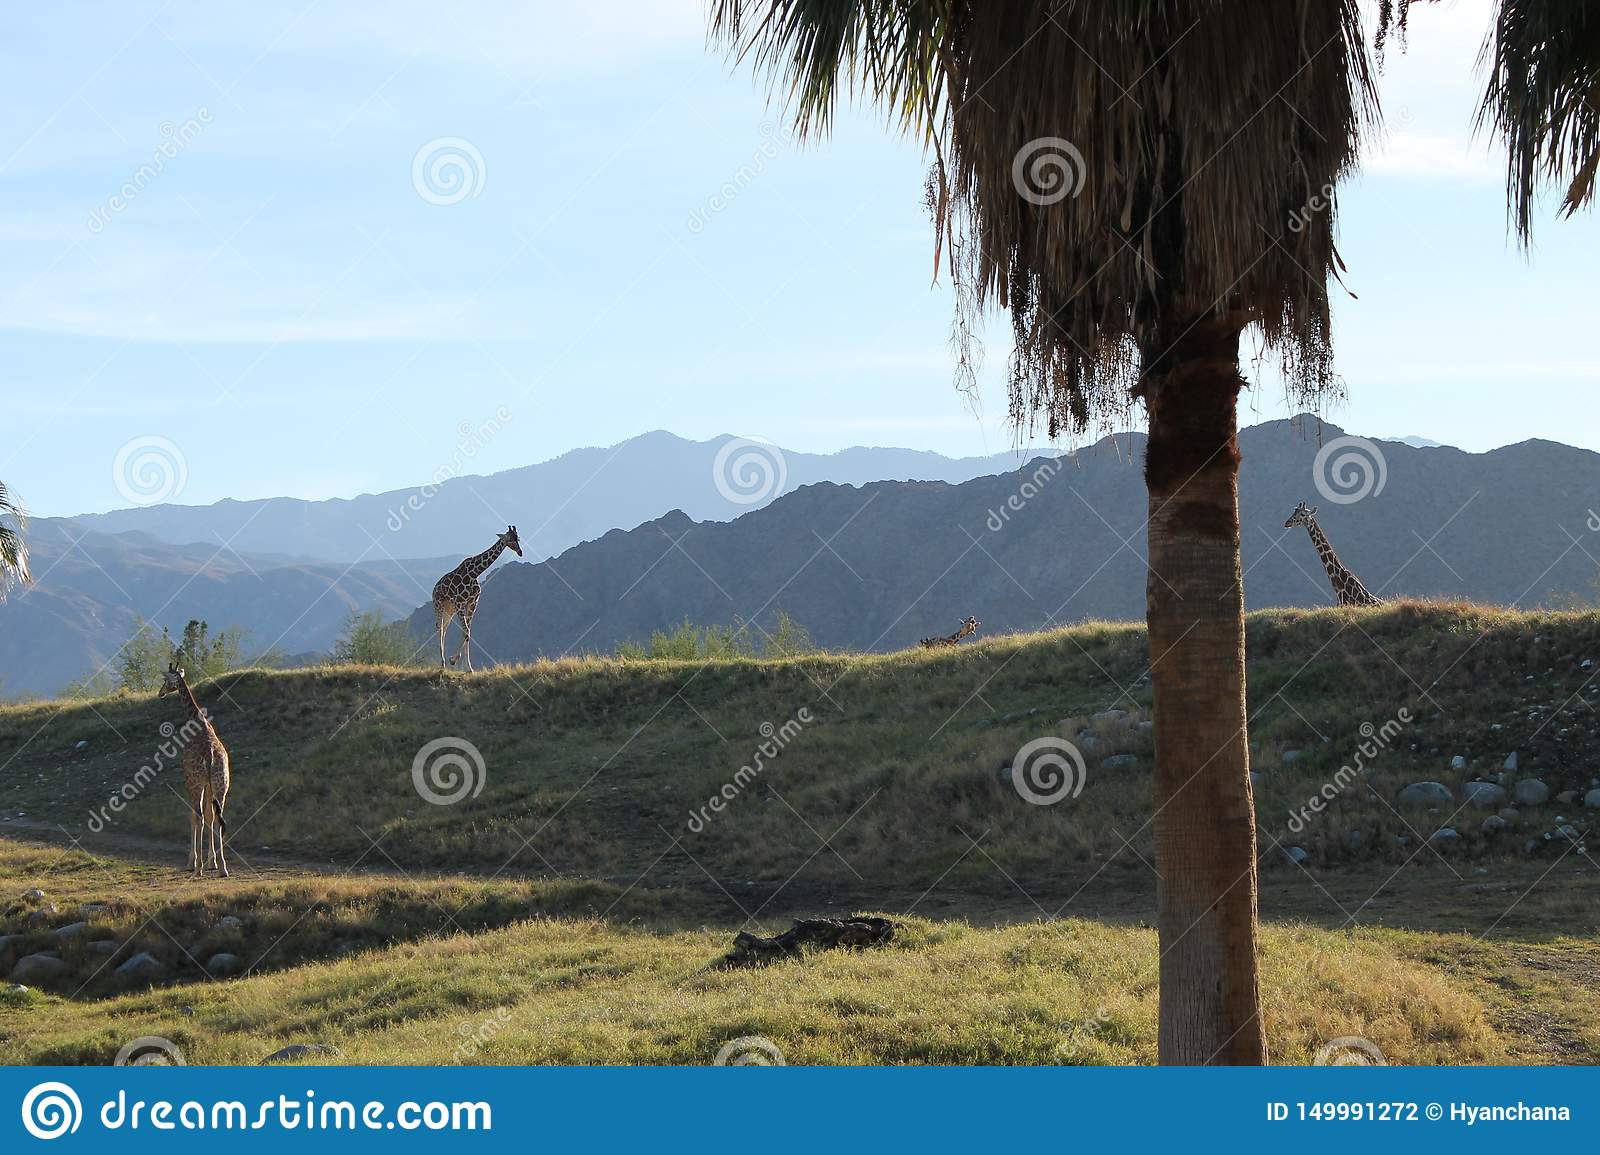 Giraff i Forest Mountain Background